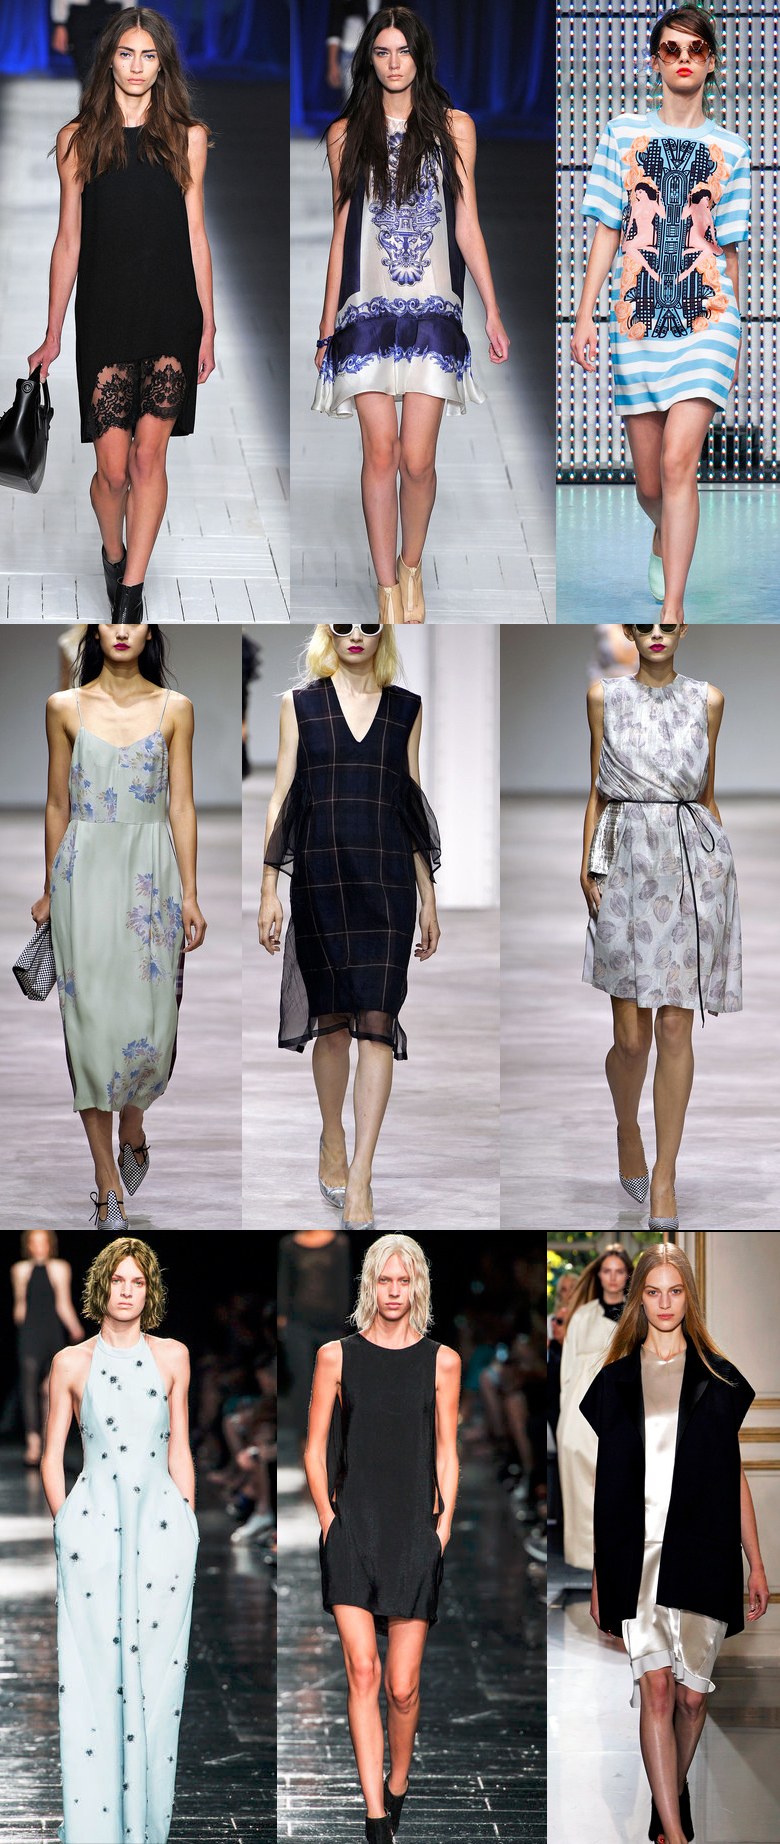 dresses, fashion, style, spring summer 2013, ss13, dries van noten, roberto cavalli, just cavalli, holly fulton, celine, theysken's theory